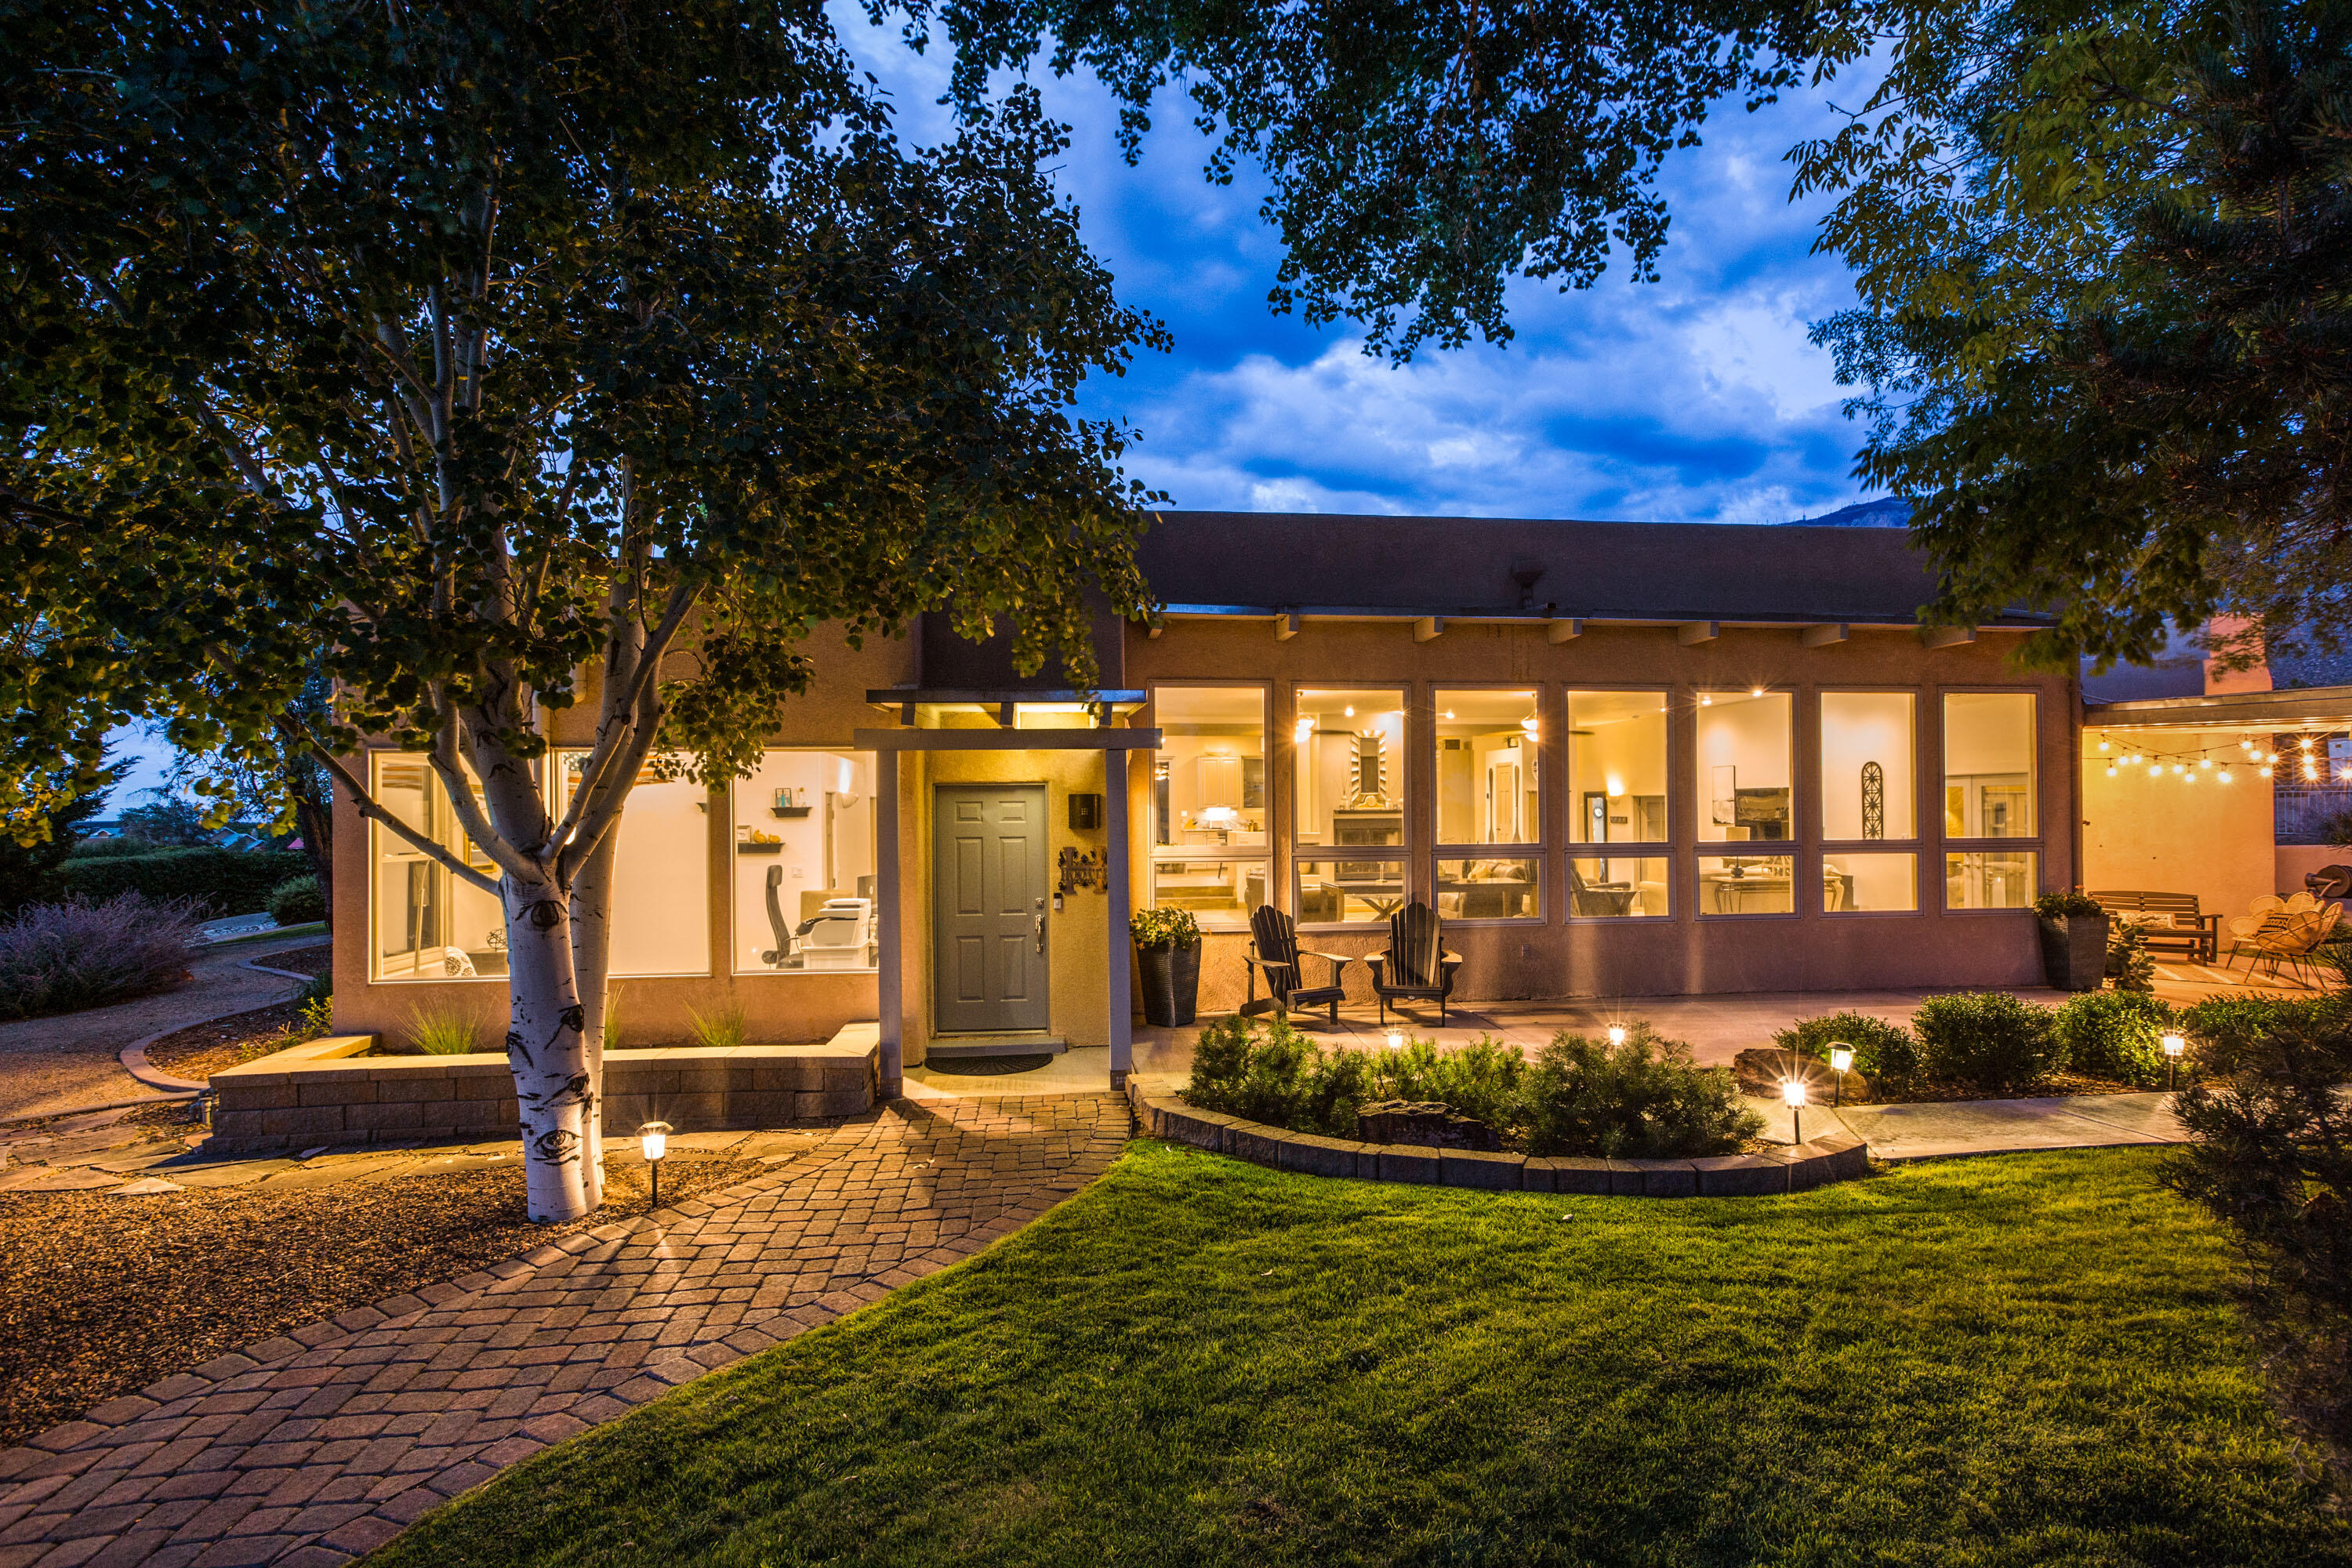 *Open House this Saturday 8/7 from 1pm-3pm and Sunday 8/8 from 12pm-3pm**This one-of-a-kind custom home located in North Albuquerque Acres is a rare gem.The home offers an  amazingly generous Great room as well as 4 bedrooms, 4 bathrooms, and an office.  The Primary suite is separate from the secondary rooms for added privacy.The office   offers a wall of windows showing off the spectacular Sandia Mountain views.  Also, offered are a 4-car garage (2-car garage is detached and 2-car garage is attached).  The yards both in the front and back of the home take full advantage  of the glorious Sandia Mountain views allowing you to take in the views wherever you chose to relax and take them in. Too many glorious attributes to name with this home. A definite must see, this won't last long!